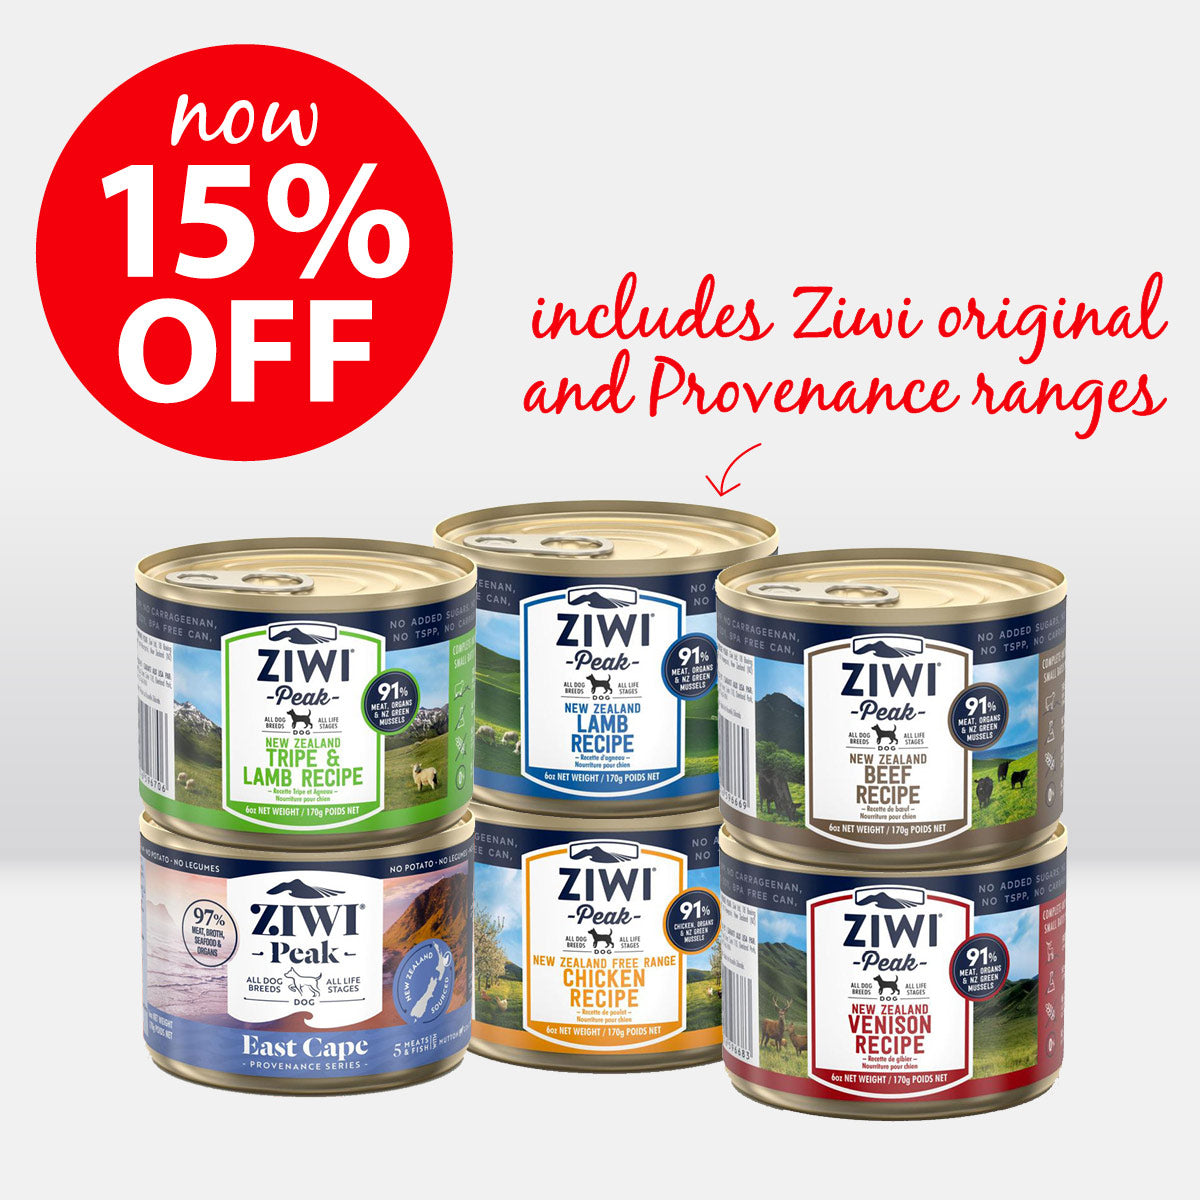 ZIWI Peak Canned Food for dogs ON SALE